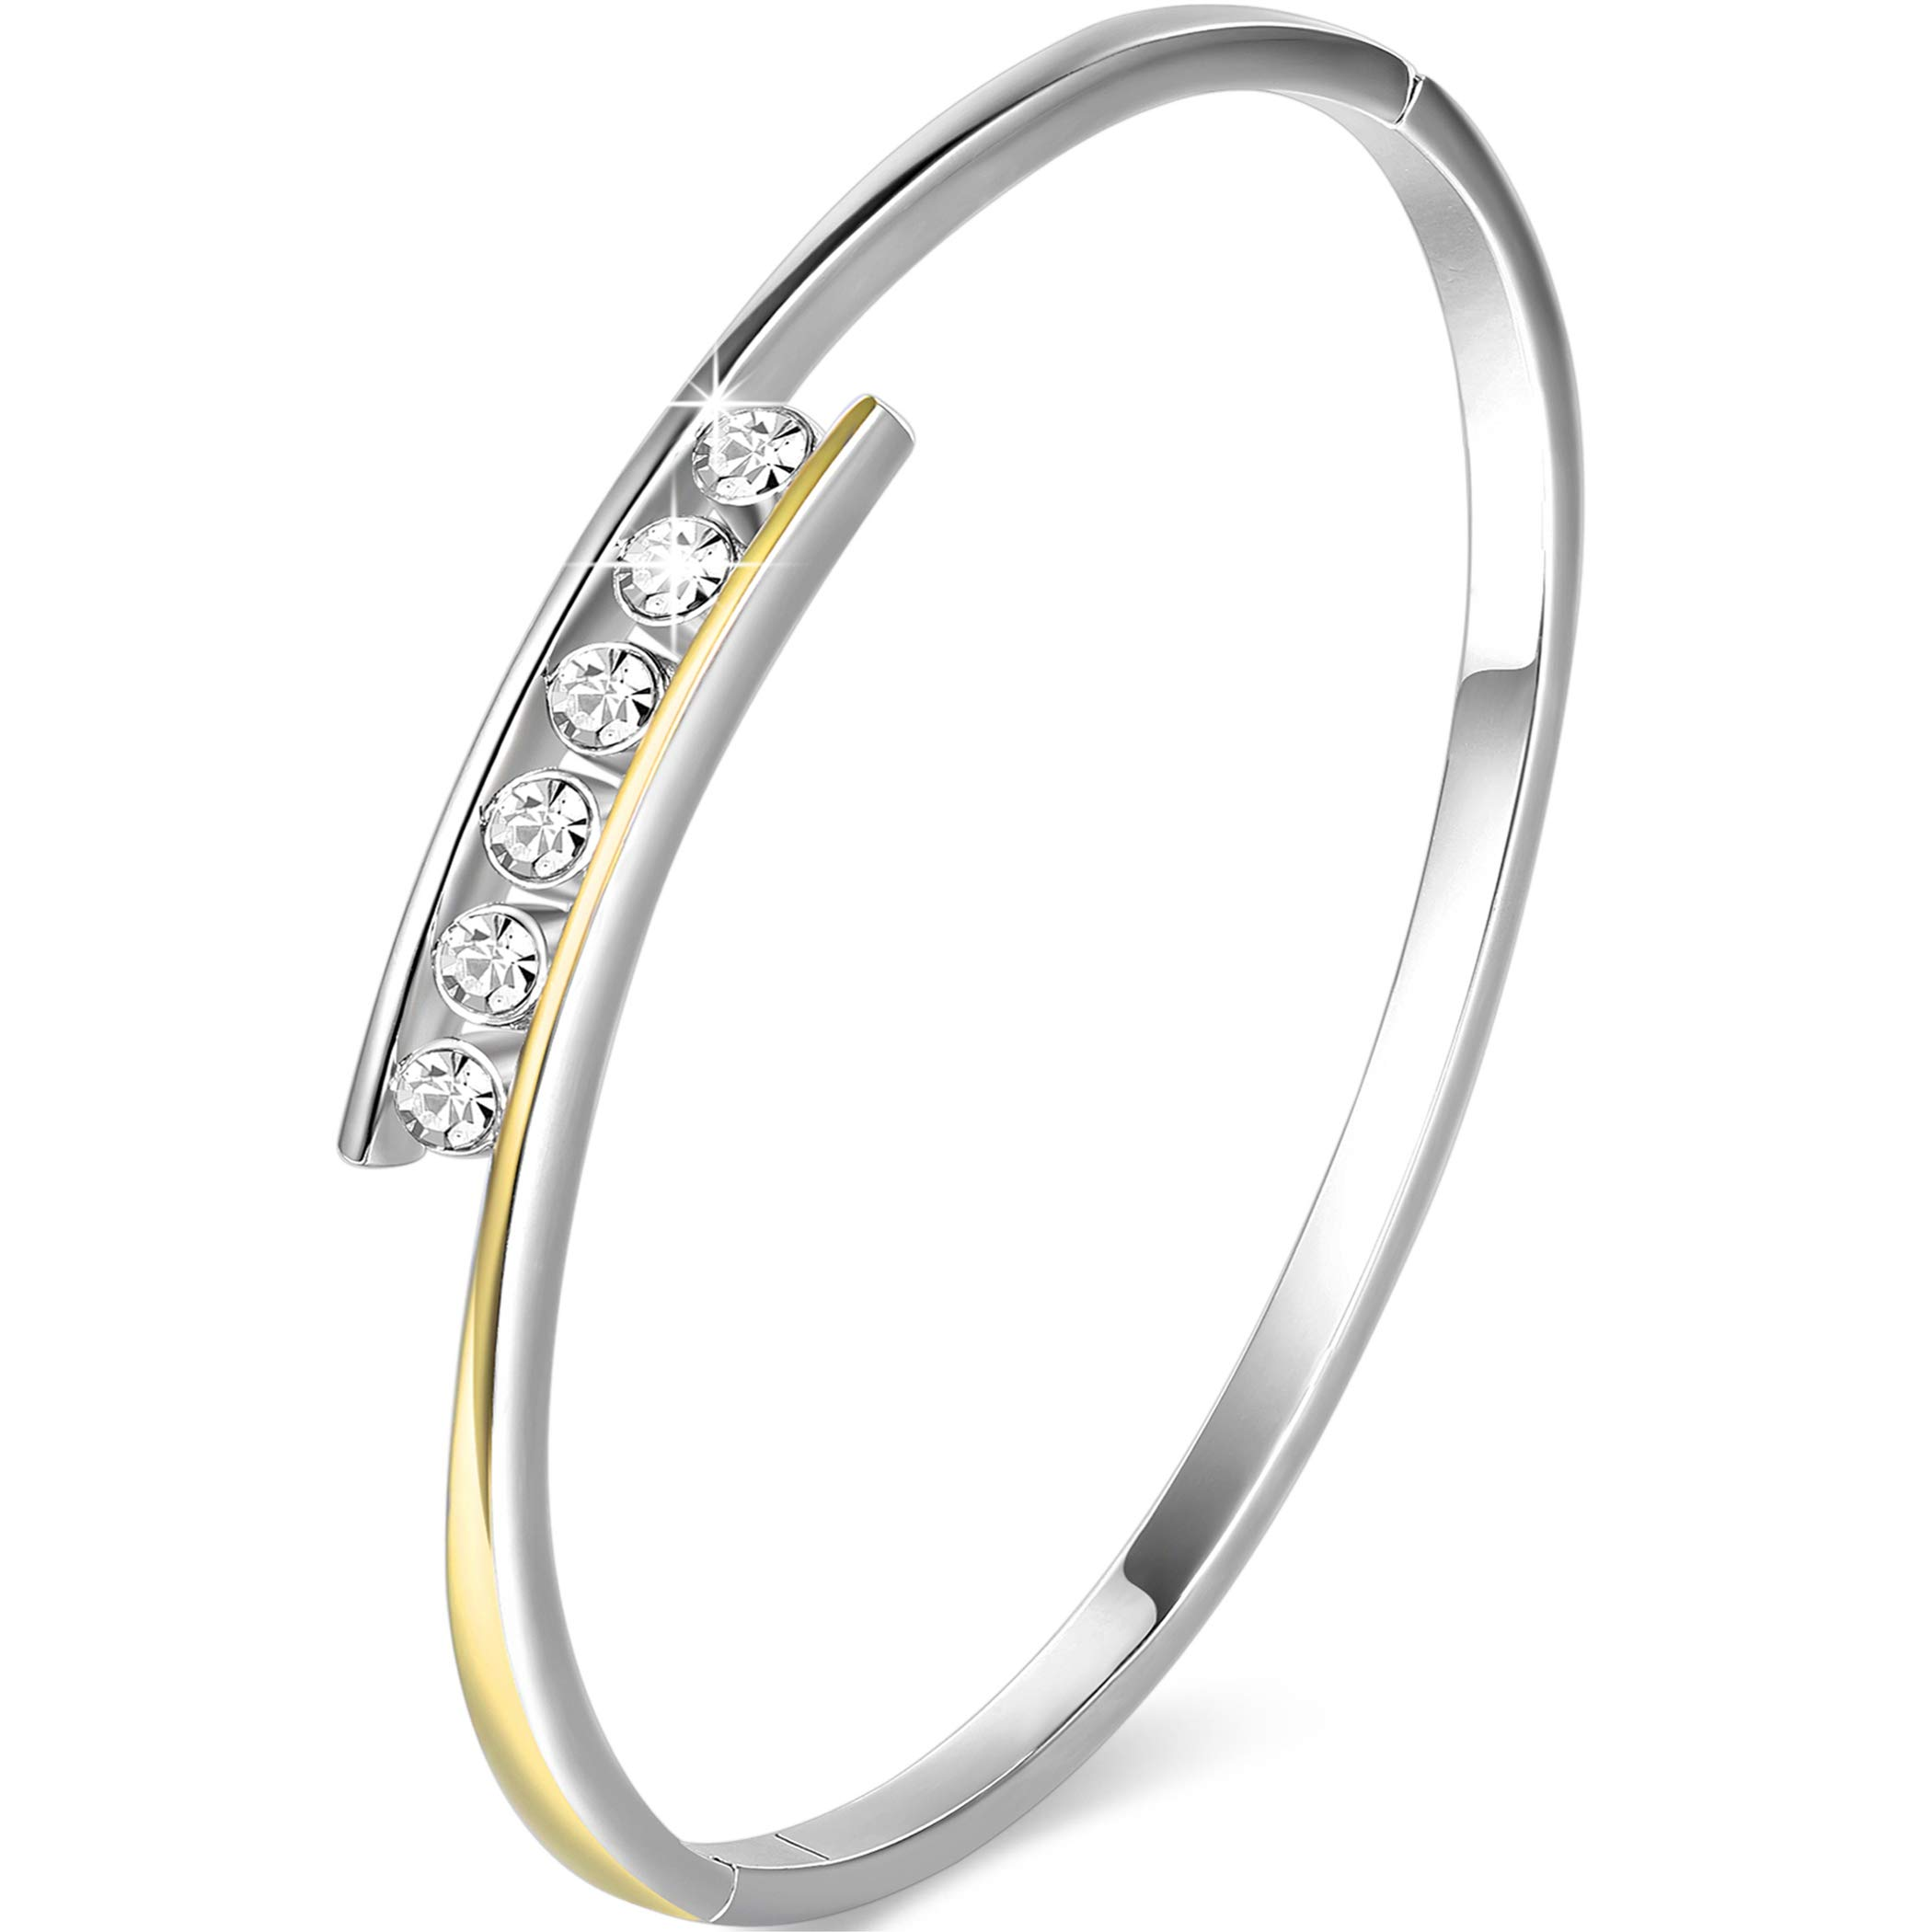 Angelady Classic Silver Bangles Bracelets for Womens Birthday Gifts Jewellery, Crystals from SWAROVSKI